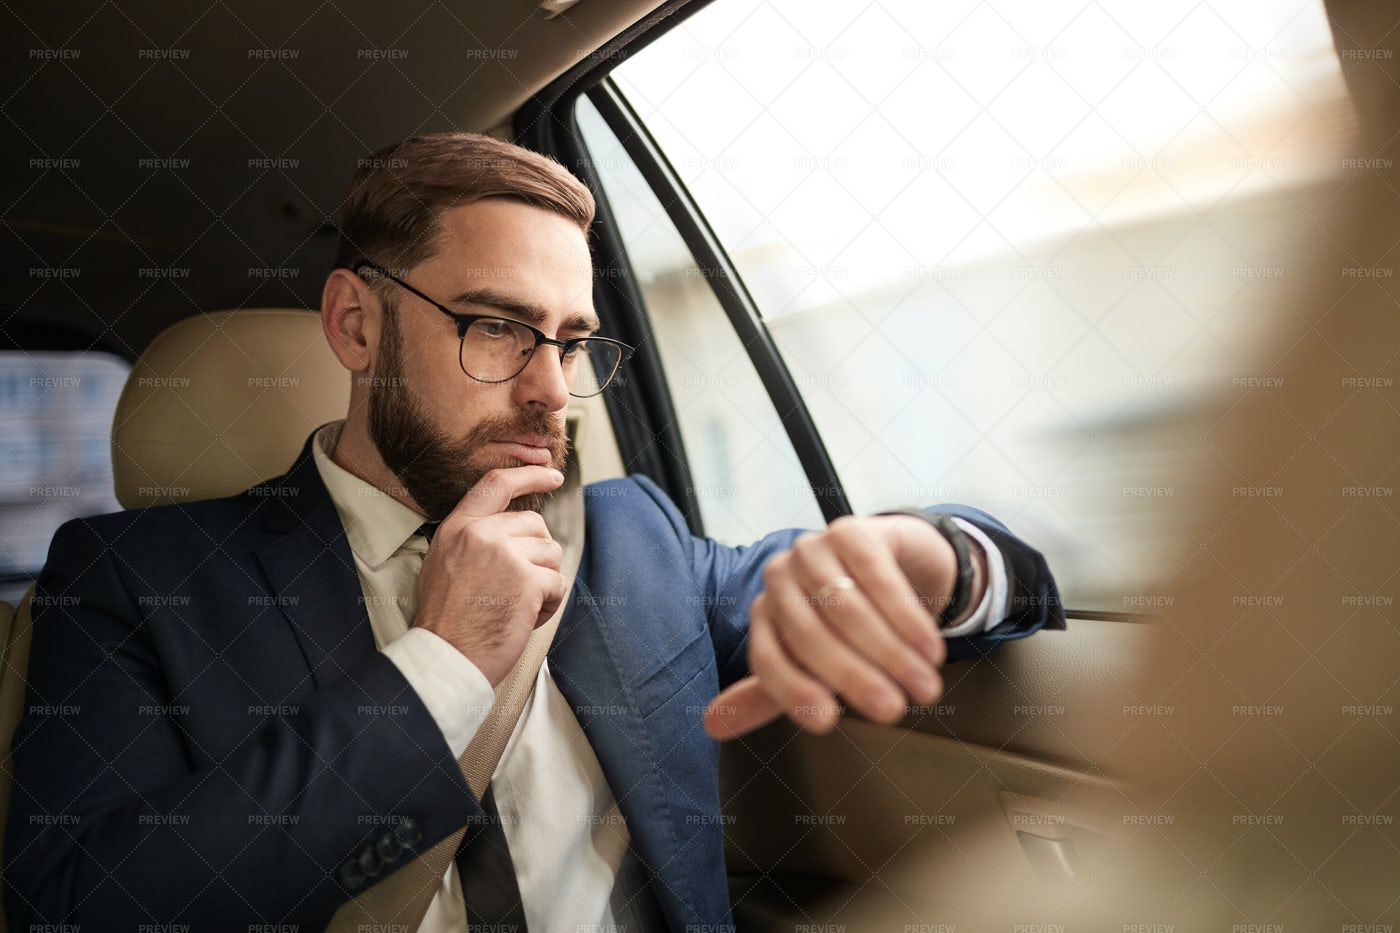 Hurrying To A Meeting: Stock Photos